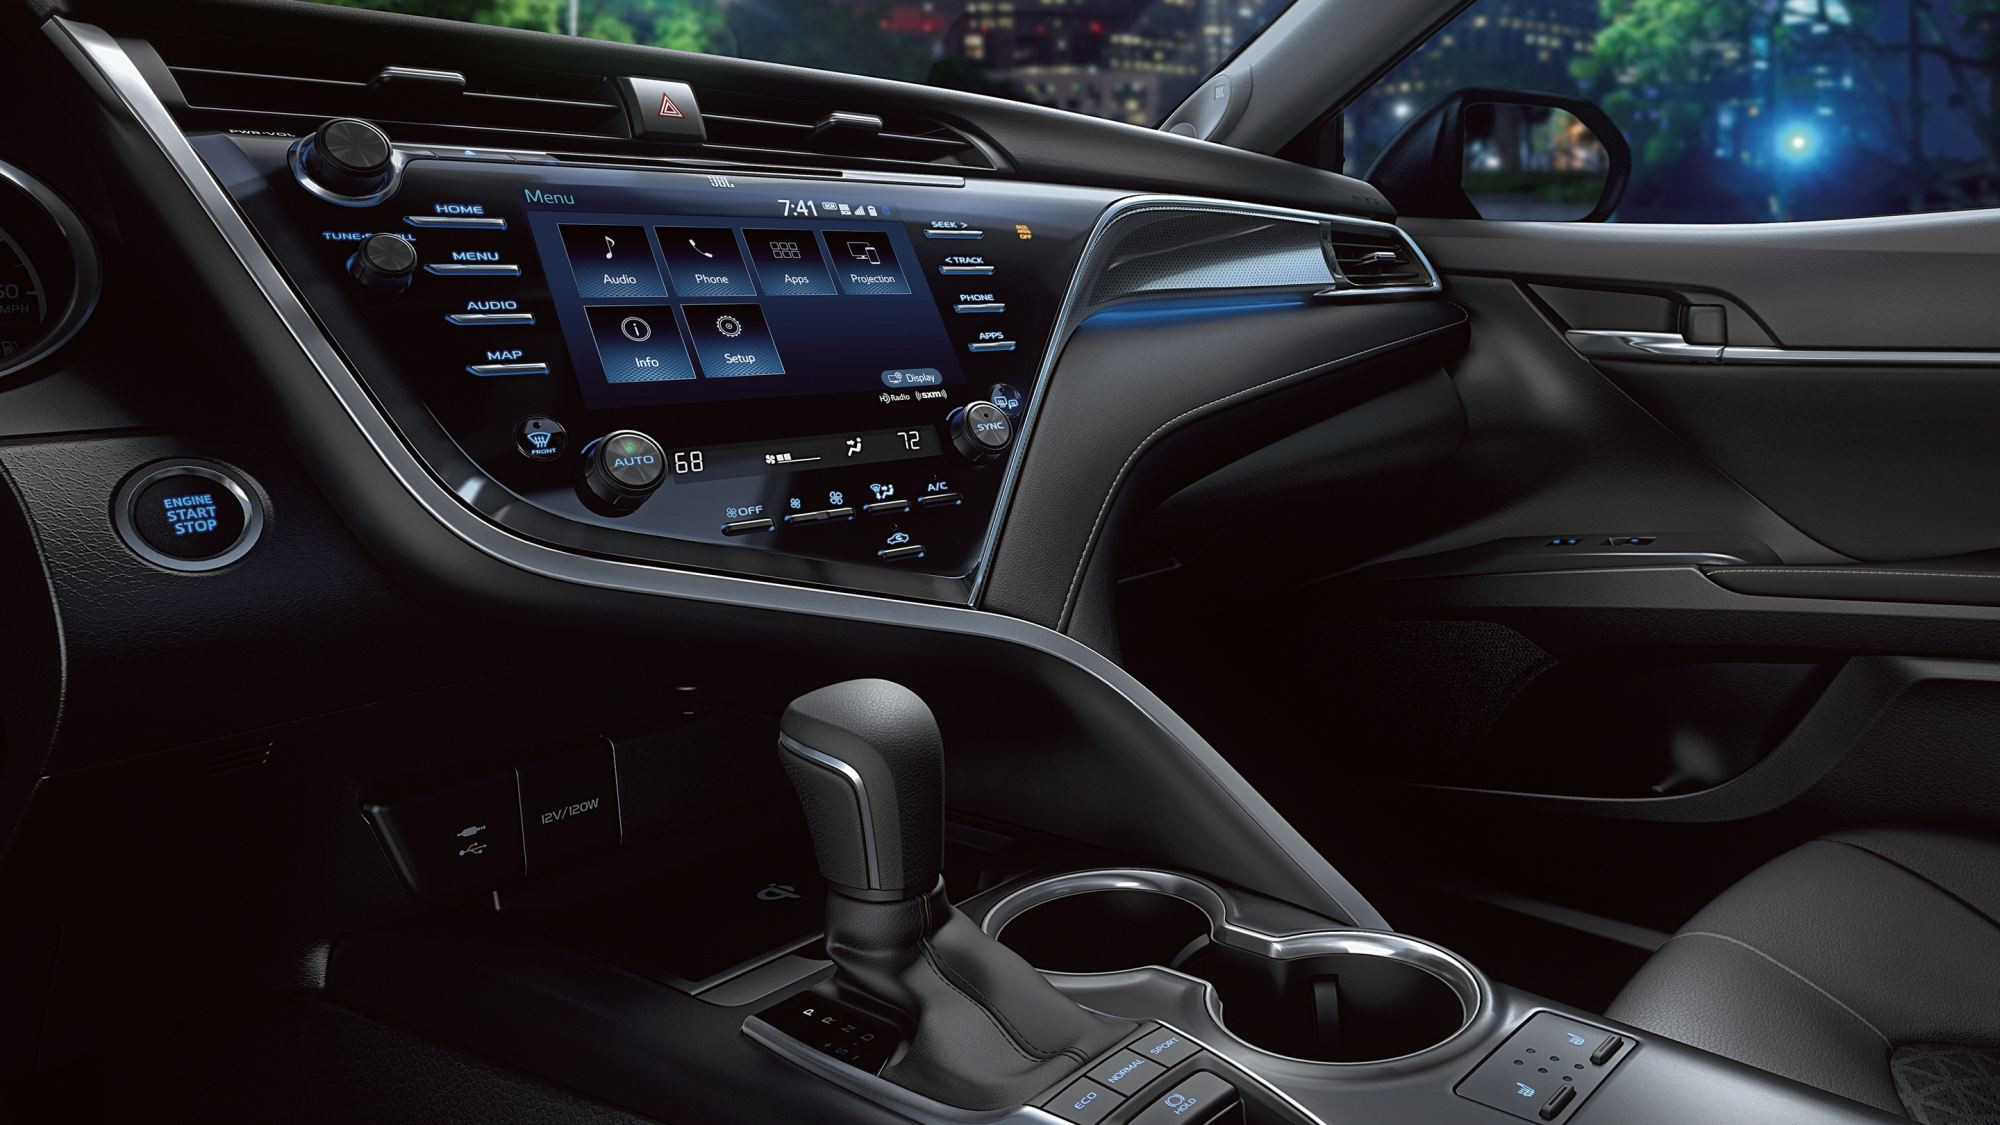 hight resolution of 2019 toyota camry center console